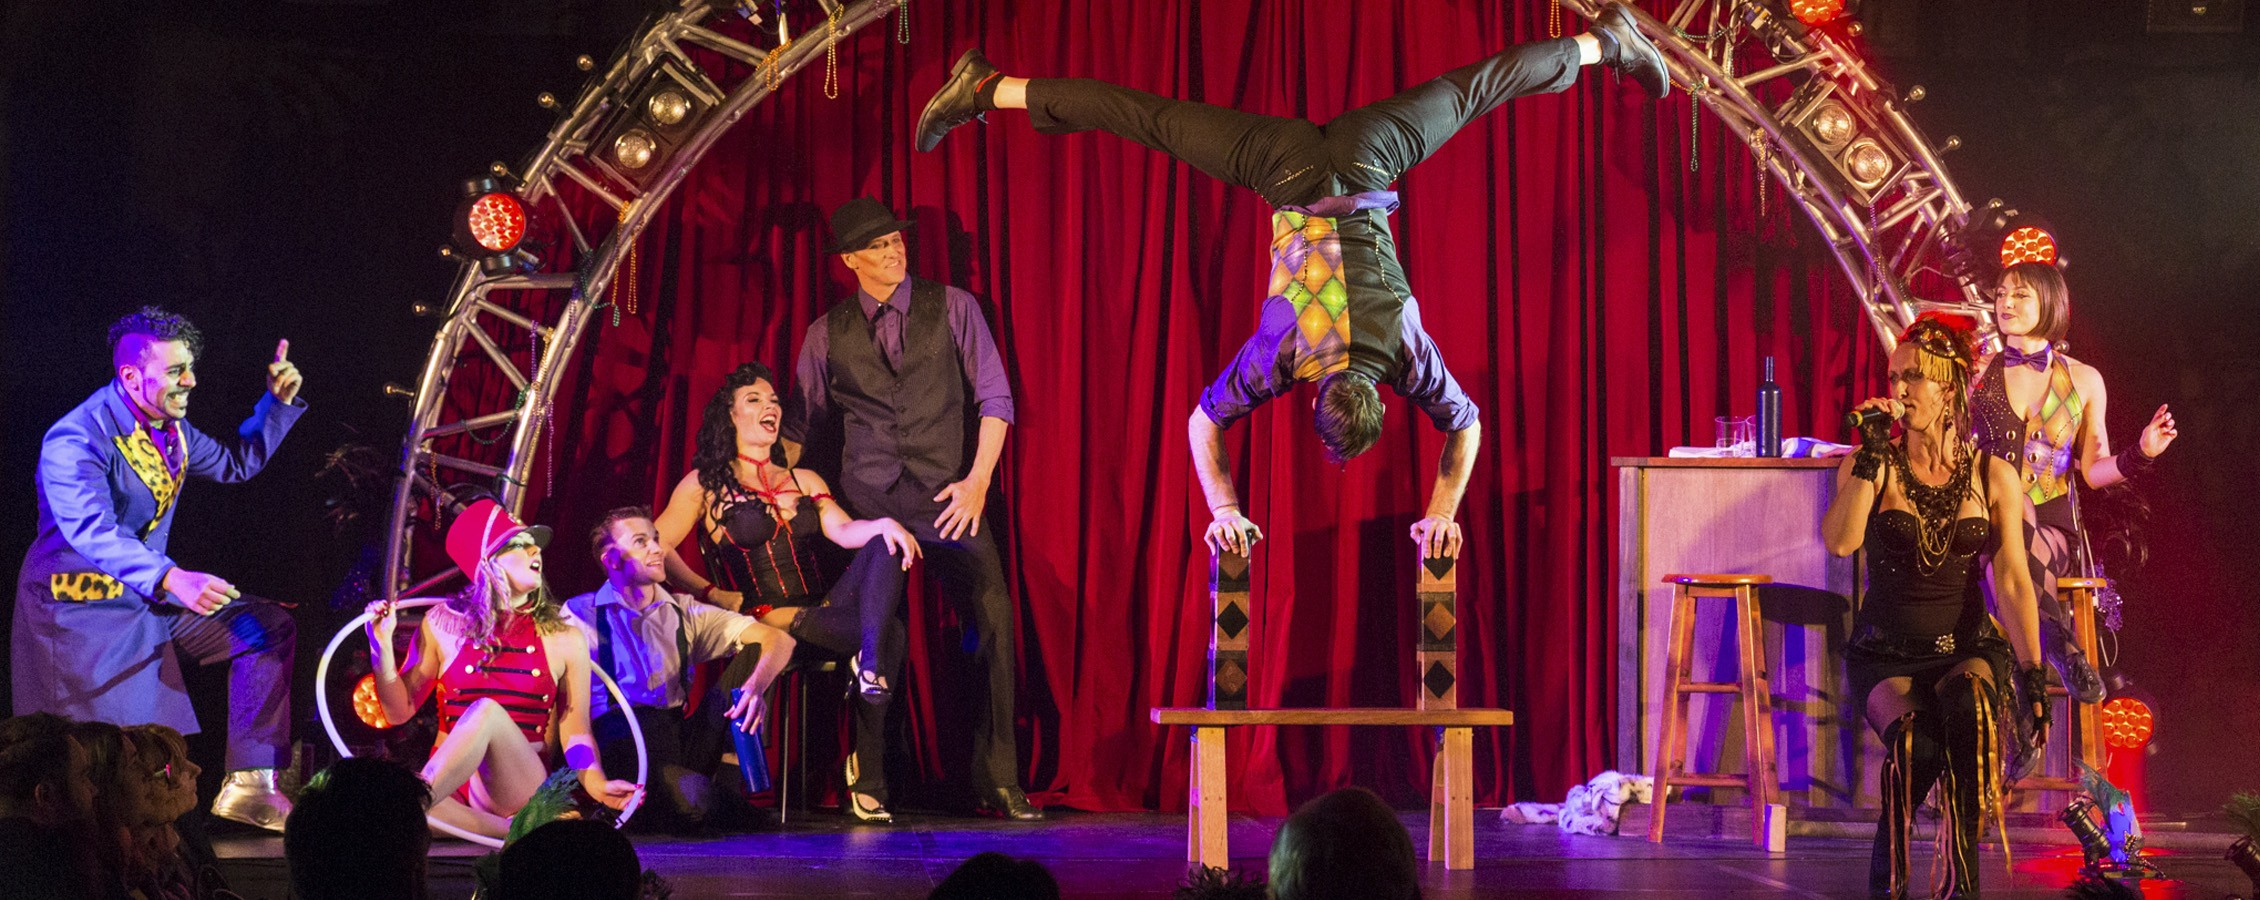 circus artists performing circus acts in a venue as part of a customised show